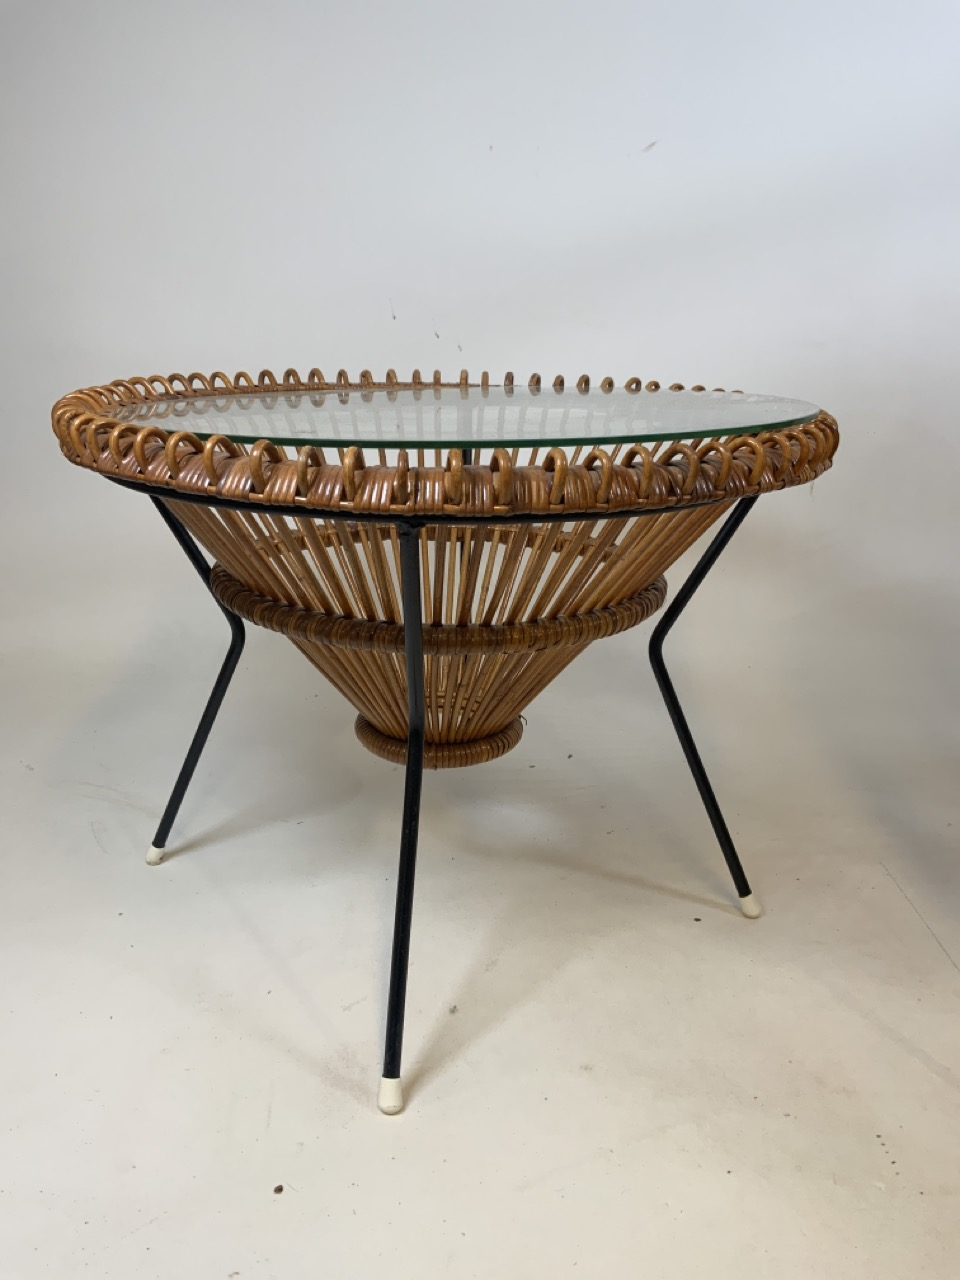 A Franco Albini mid century circular coffee table in wicker and metal with glass top and two - Image 5 of 7